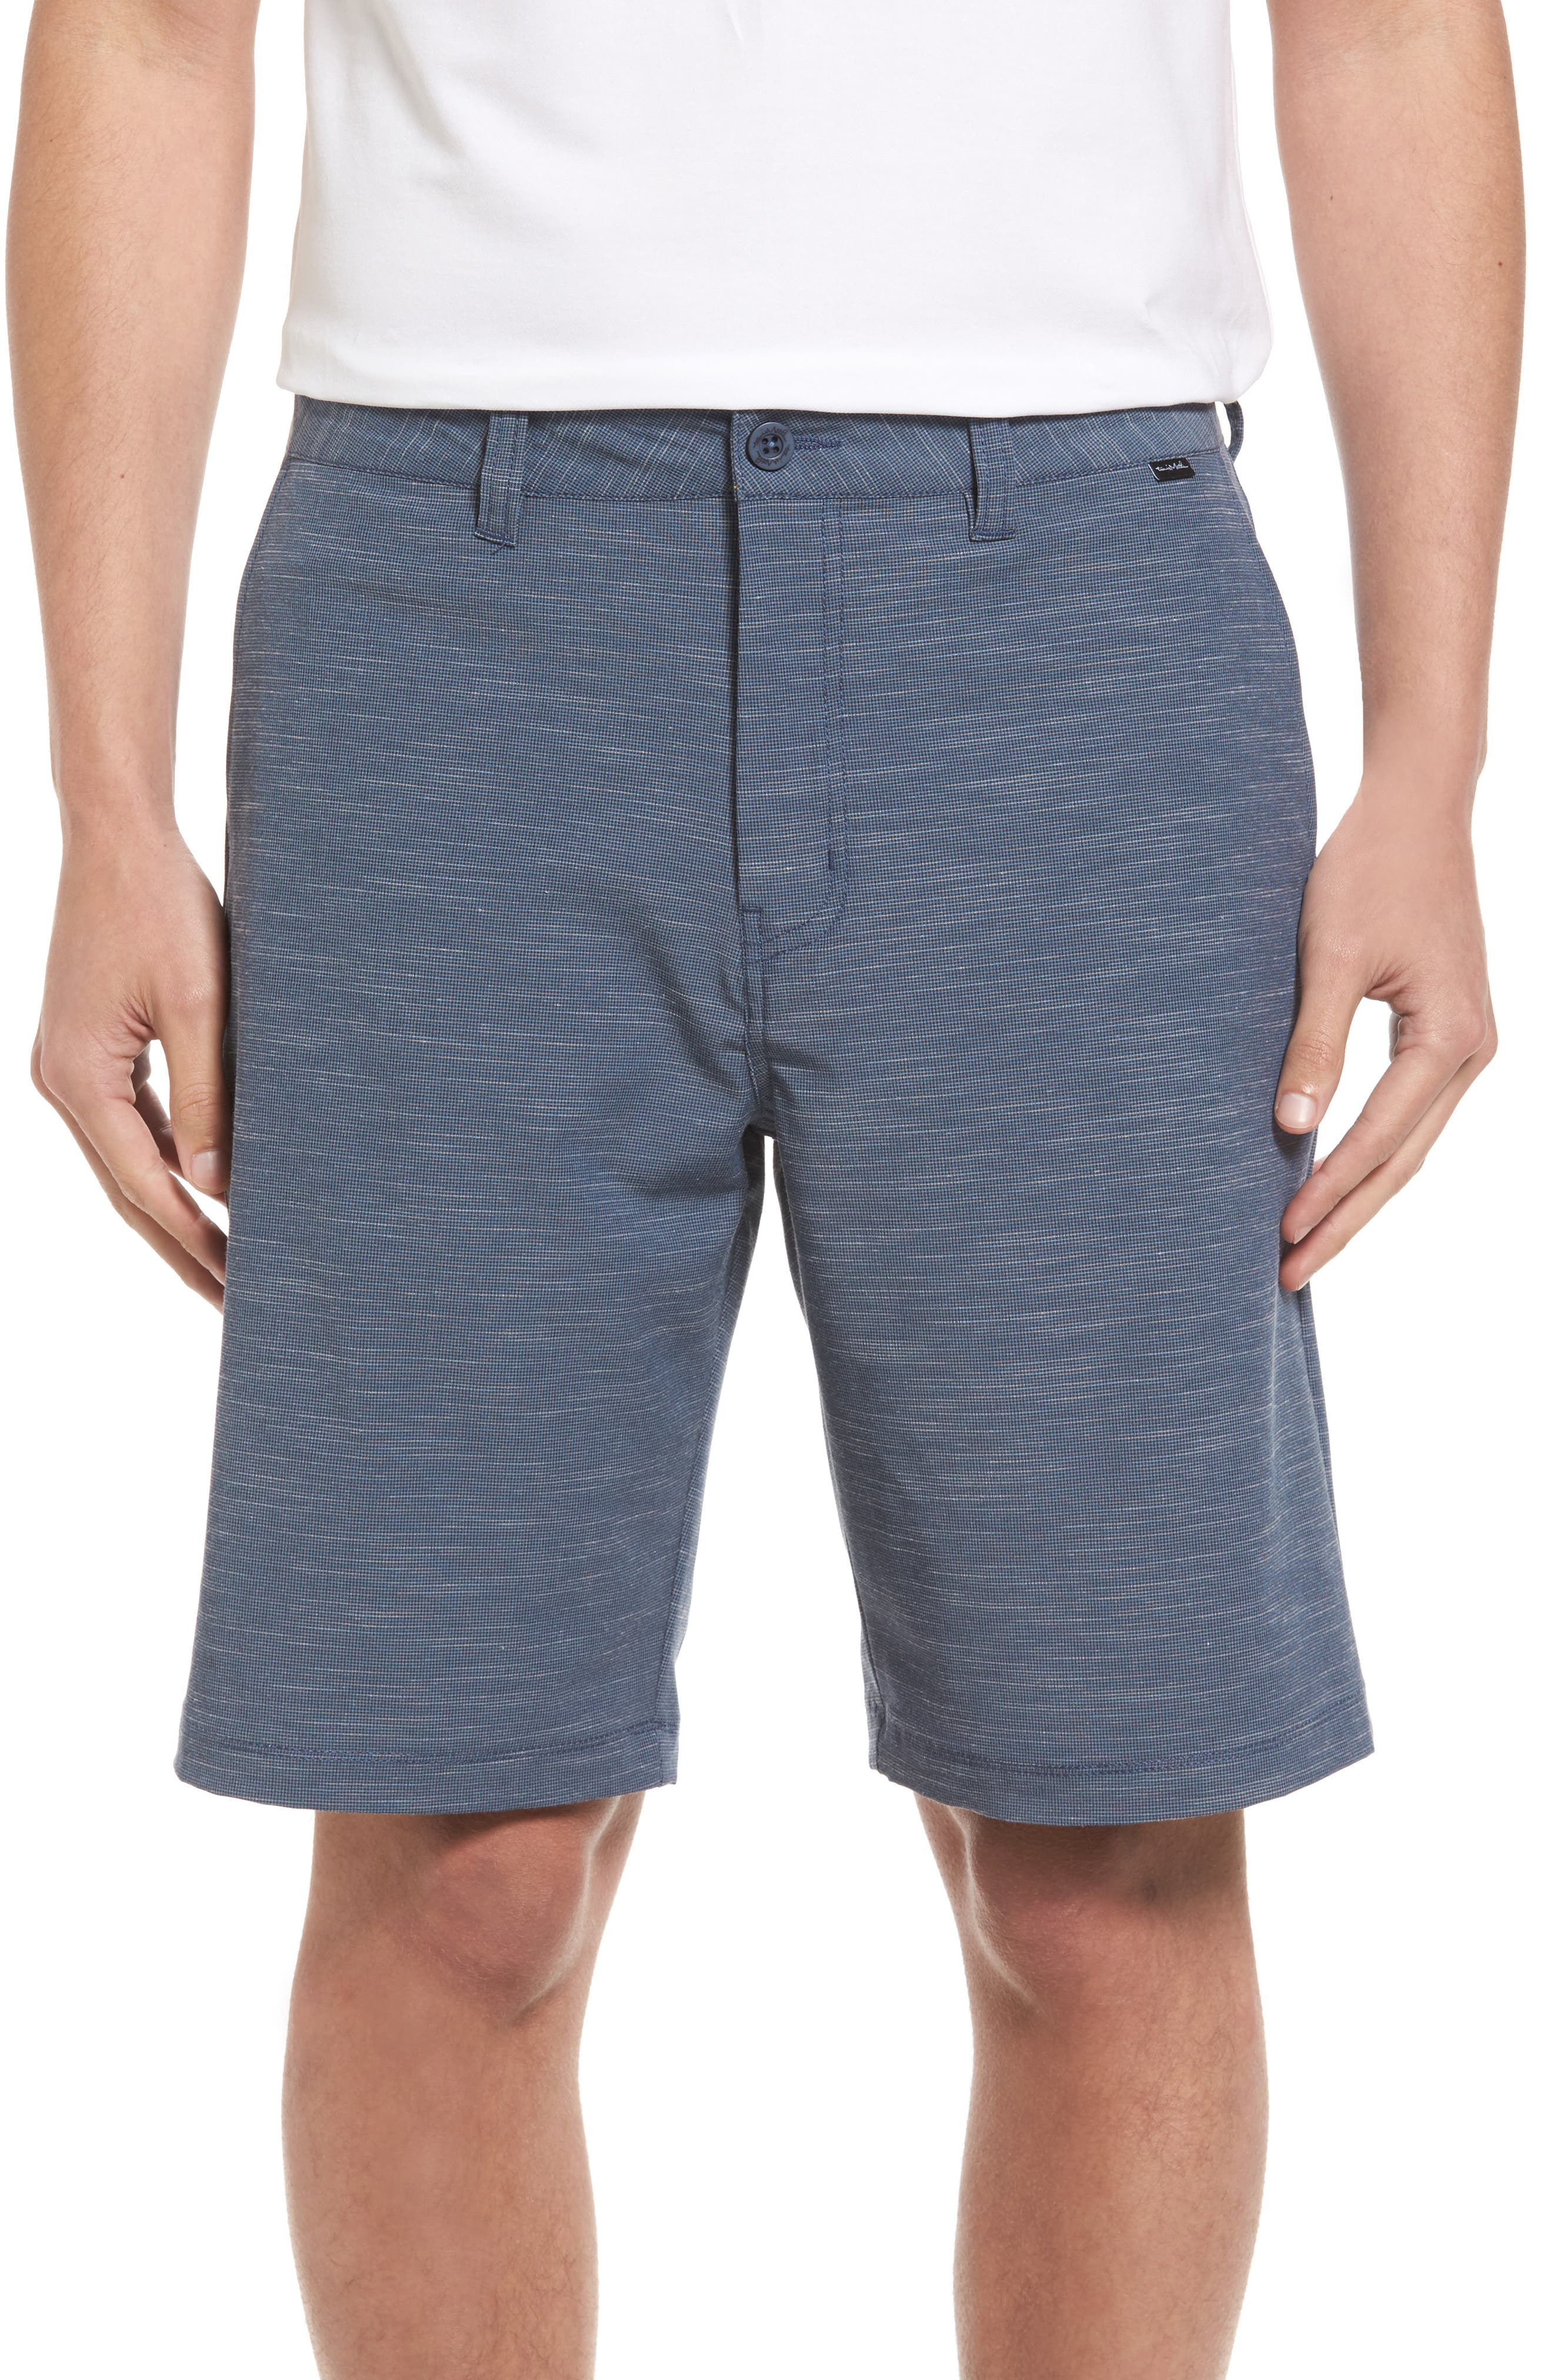 Fisher Shorts,                         Main,                         color, Heather Blue Nights